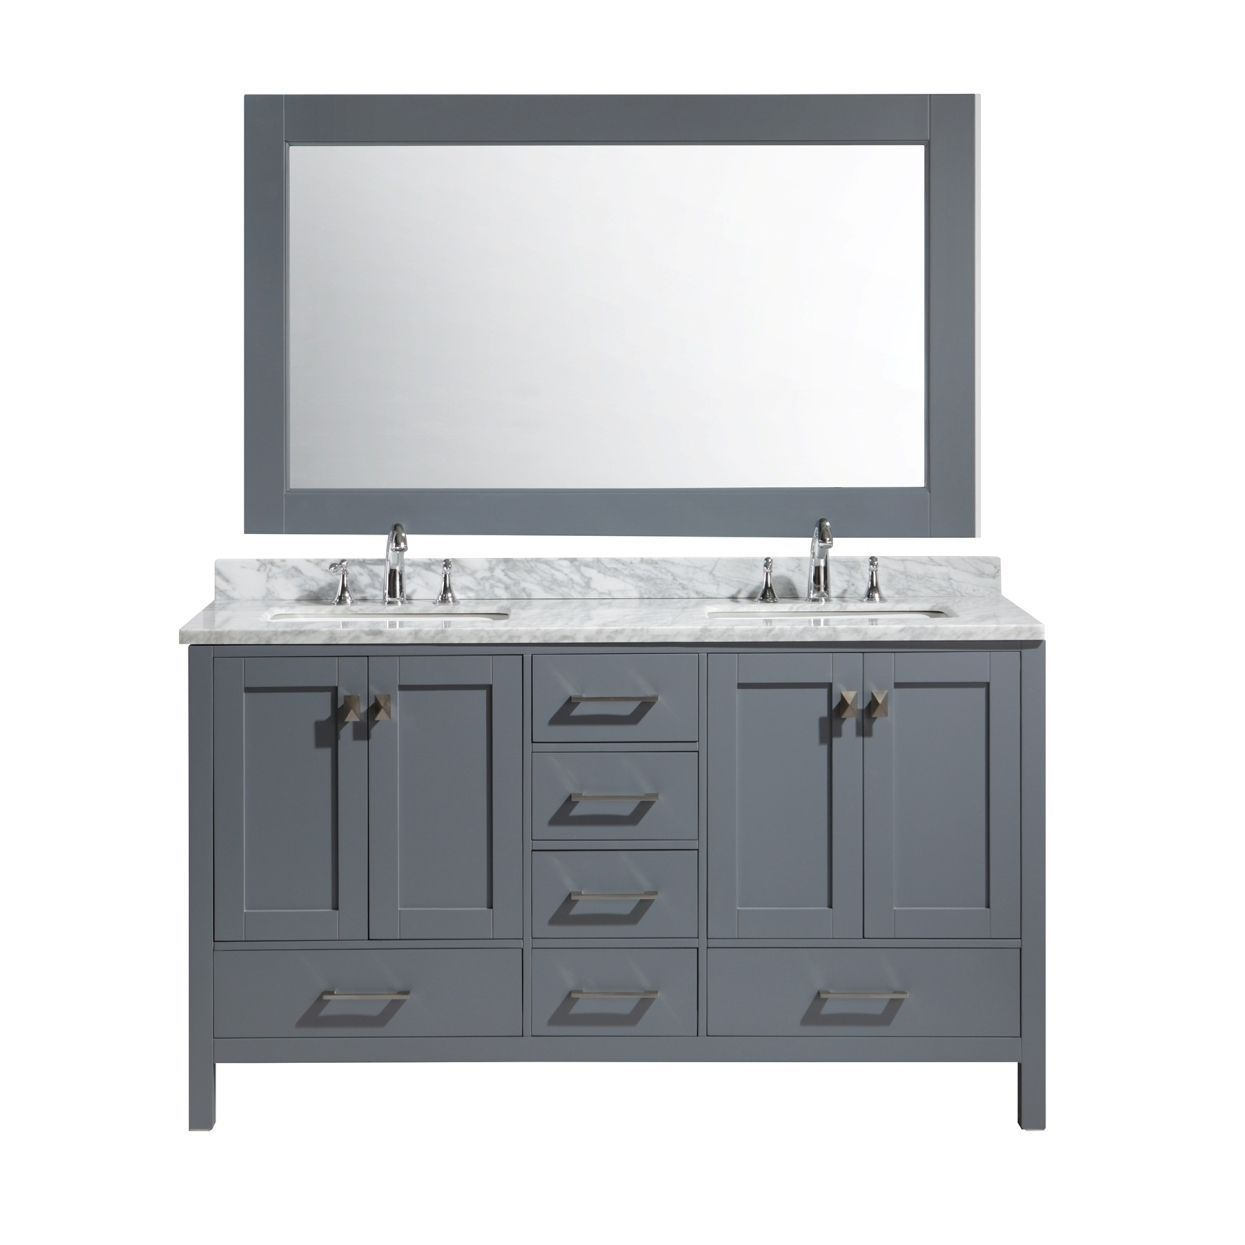 double sink vanity width. The London 61 Inch Solid Oak Wood Cabinet In Grey Finish Has A White  Carrara Double Sink